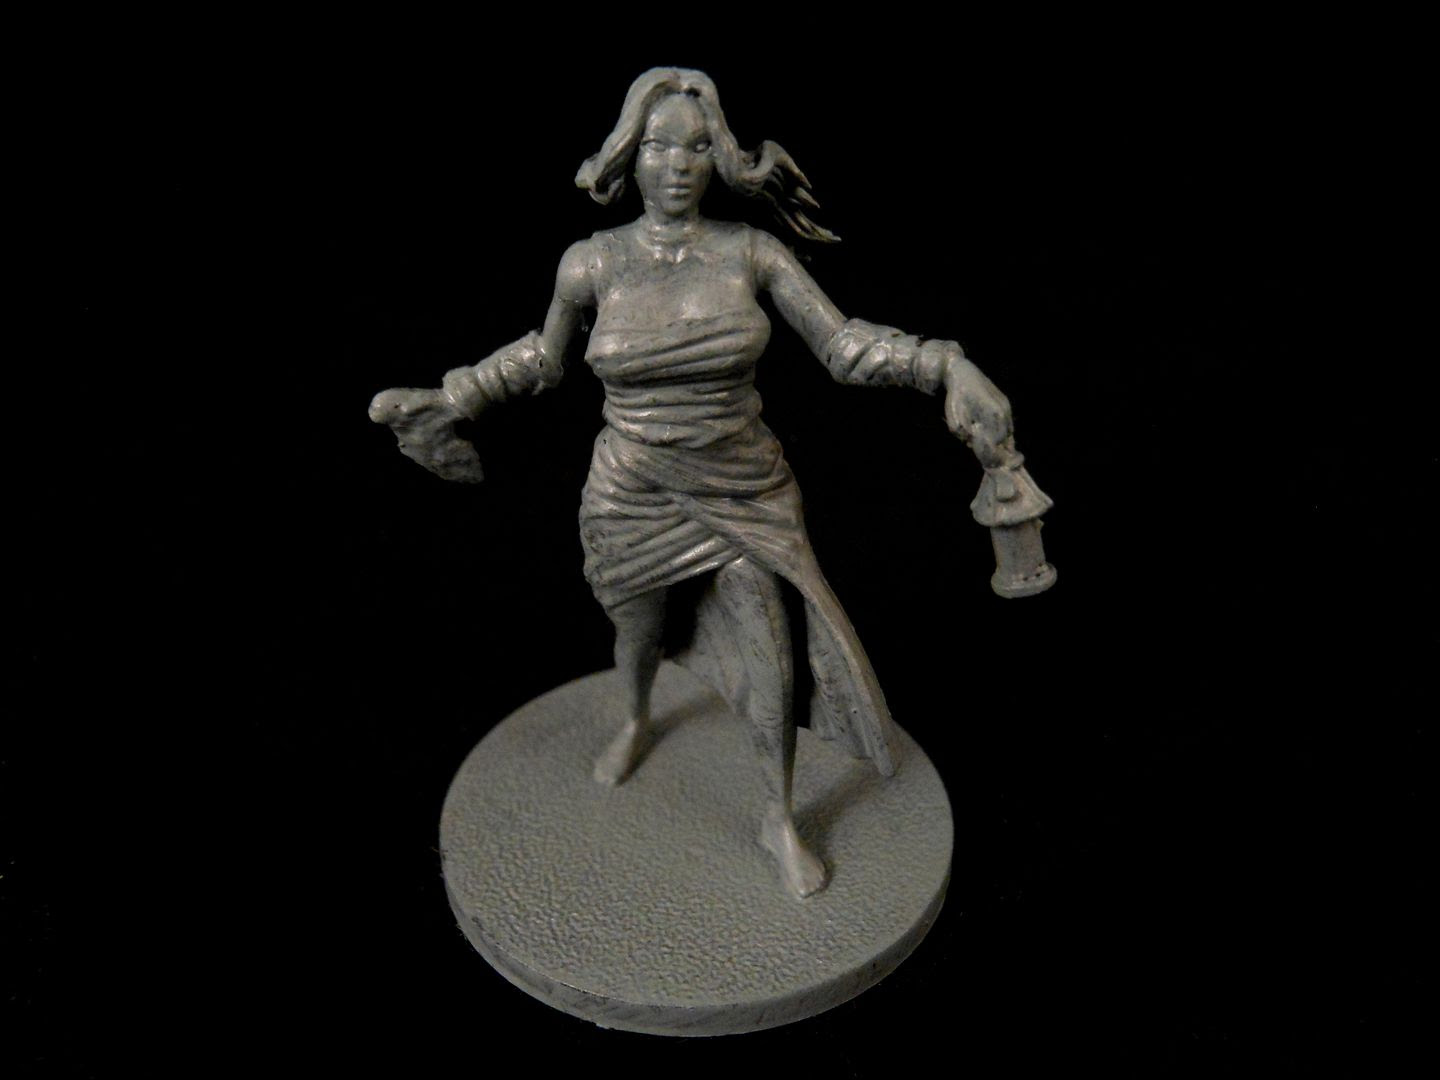 Close up photograph showing a female survivor from Kingdom Death: Monster with Uniform Grey basecoat.